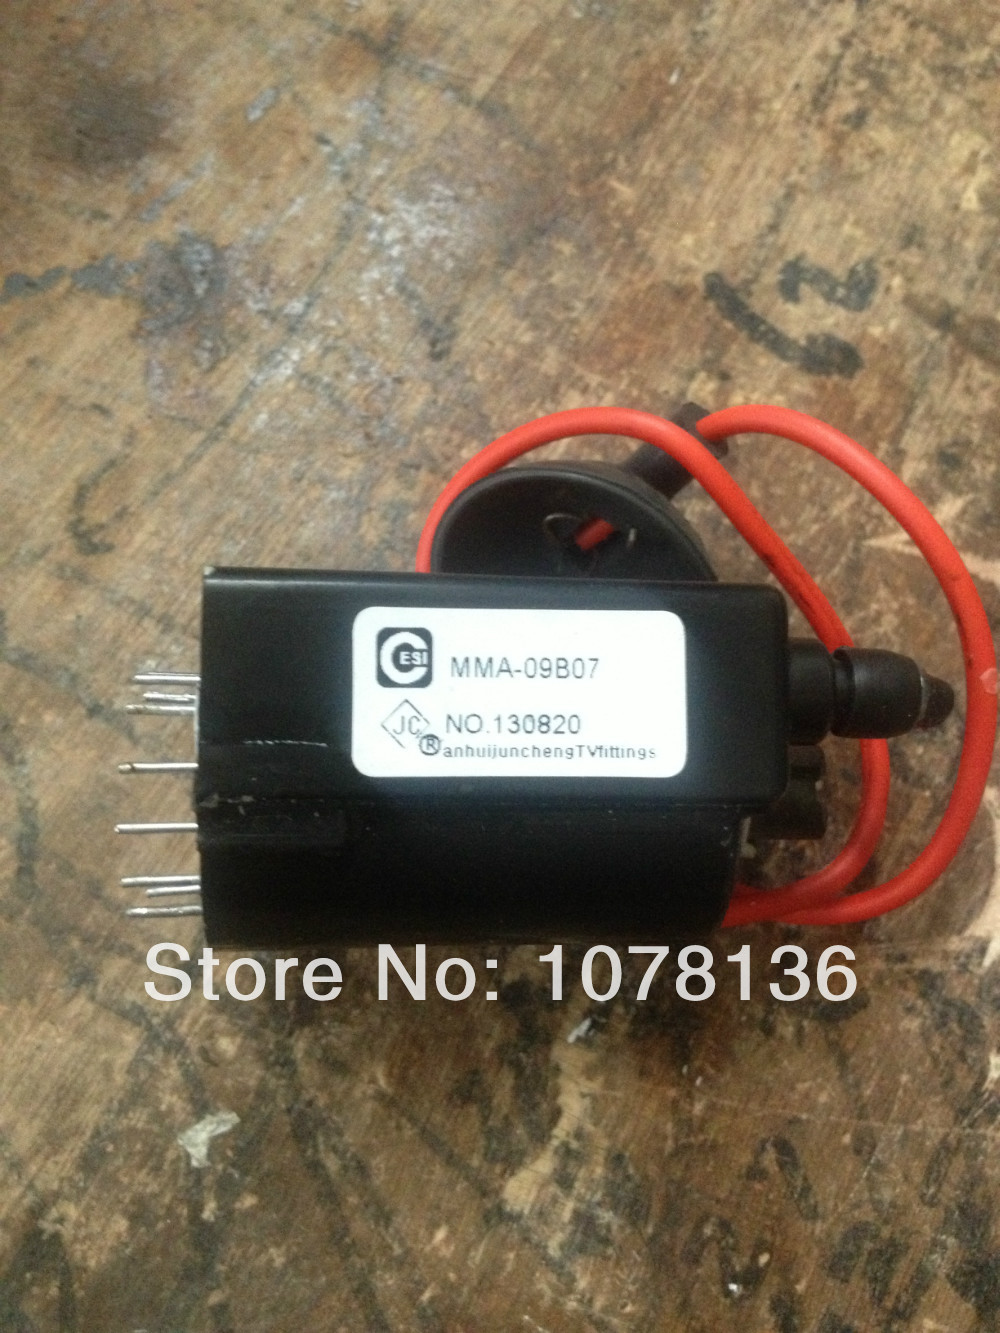 HV Transformer MMA-09b07 /AT2140/160 for machinesHV Transformer MMA-09b07 /AT2140/160 for machines